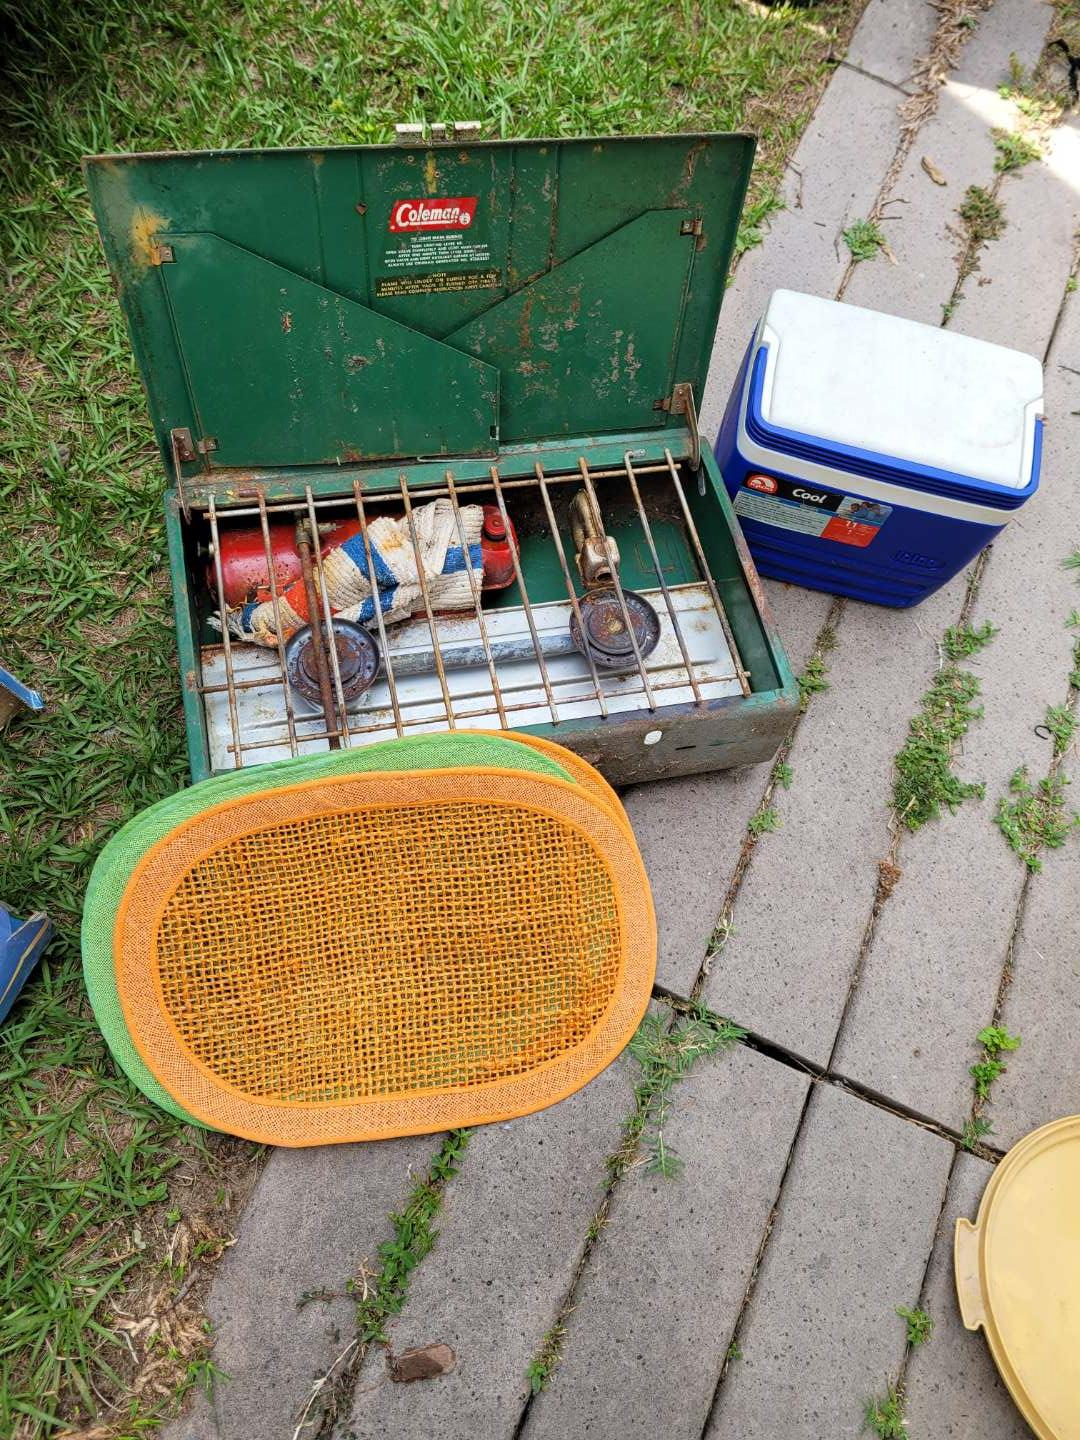 Lot # 401 Vintage Coleman Camping Stove, Placemats & Cooler